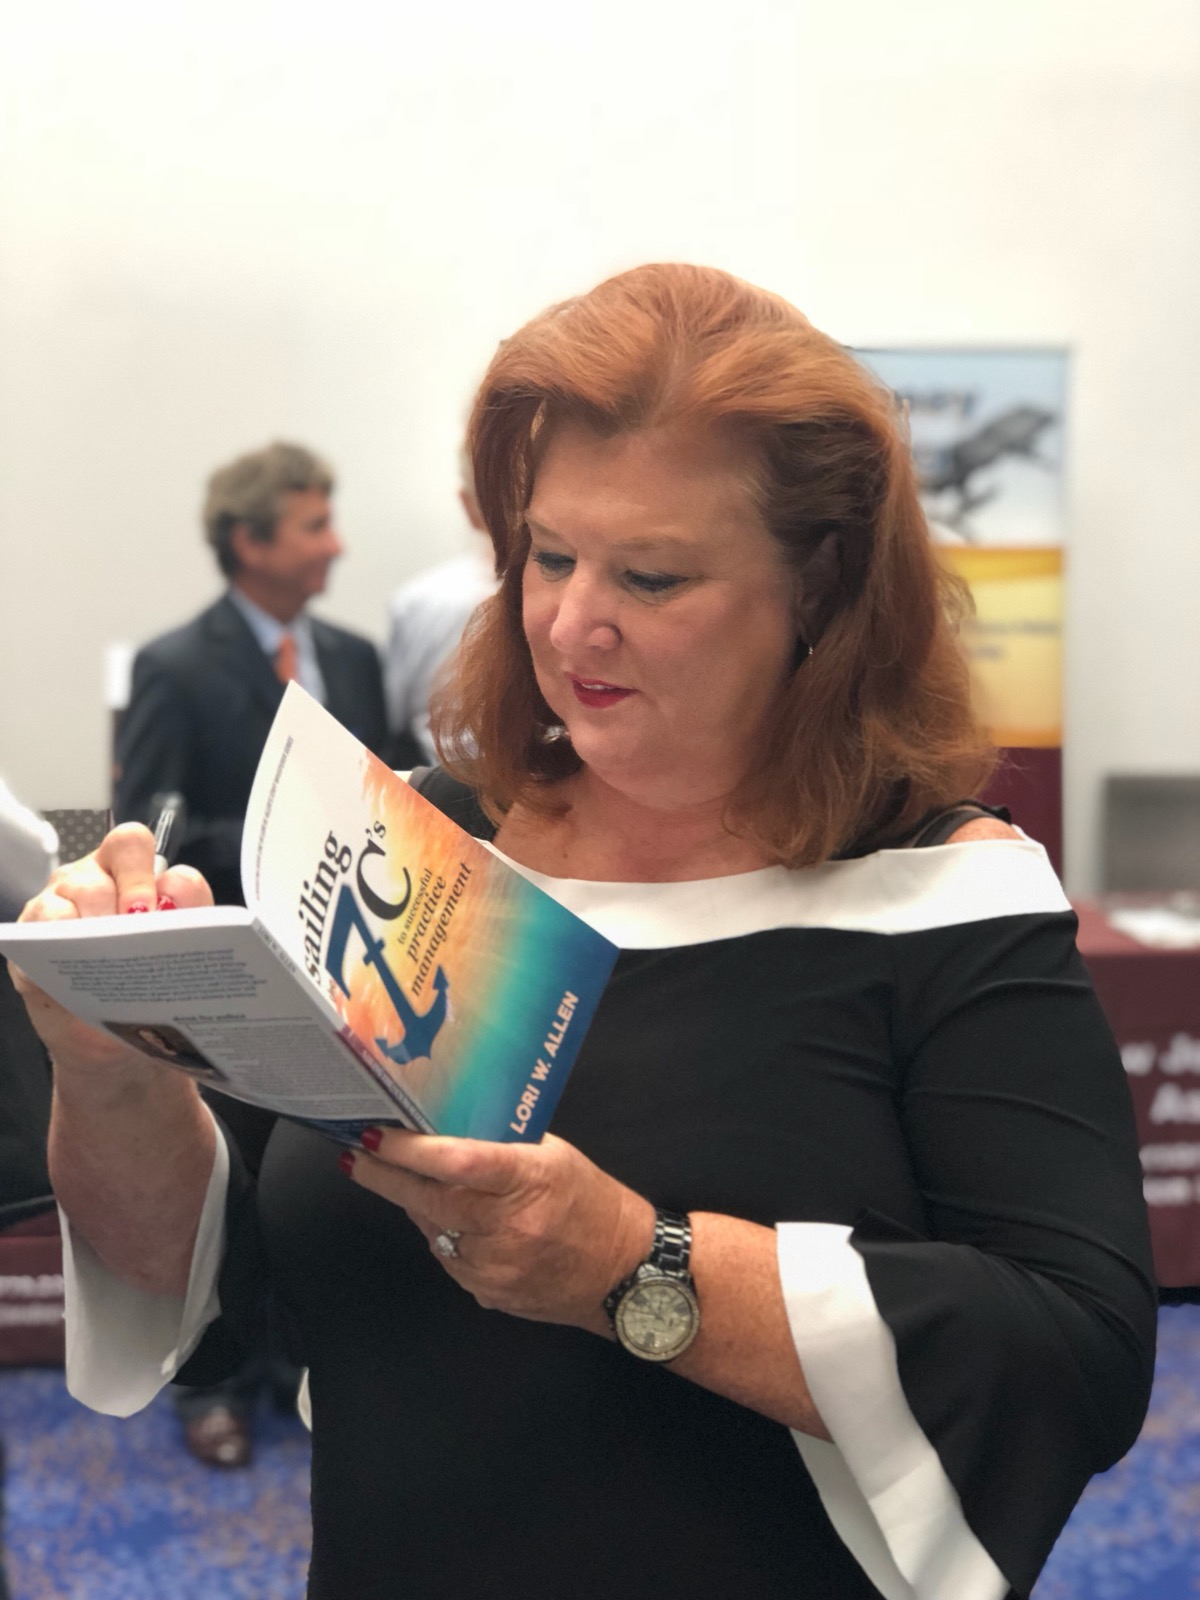 May 2018 Association of New Jersey Chiropractors Lori Book Signing-2